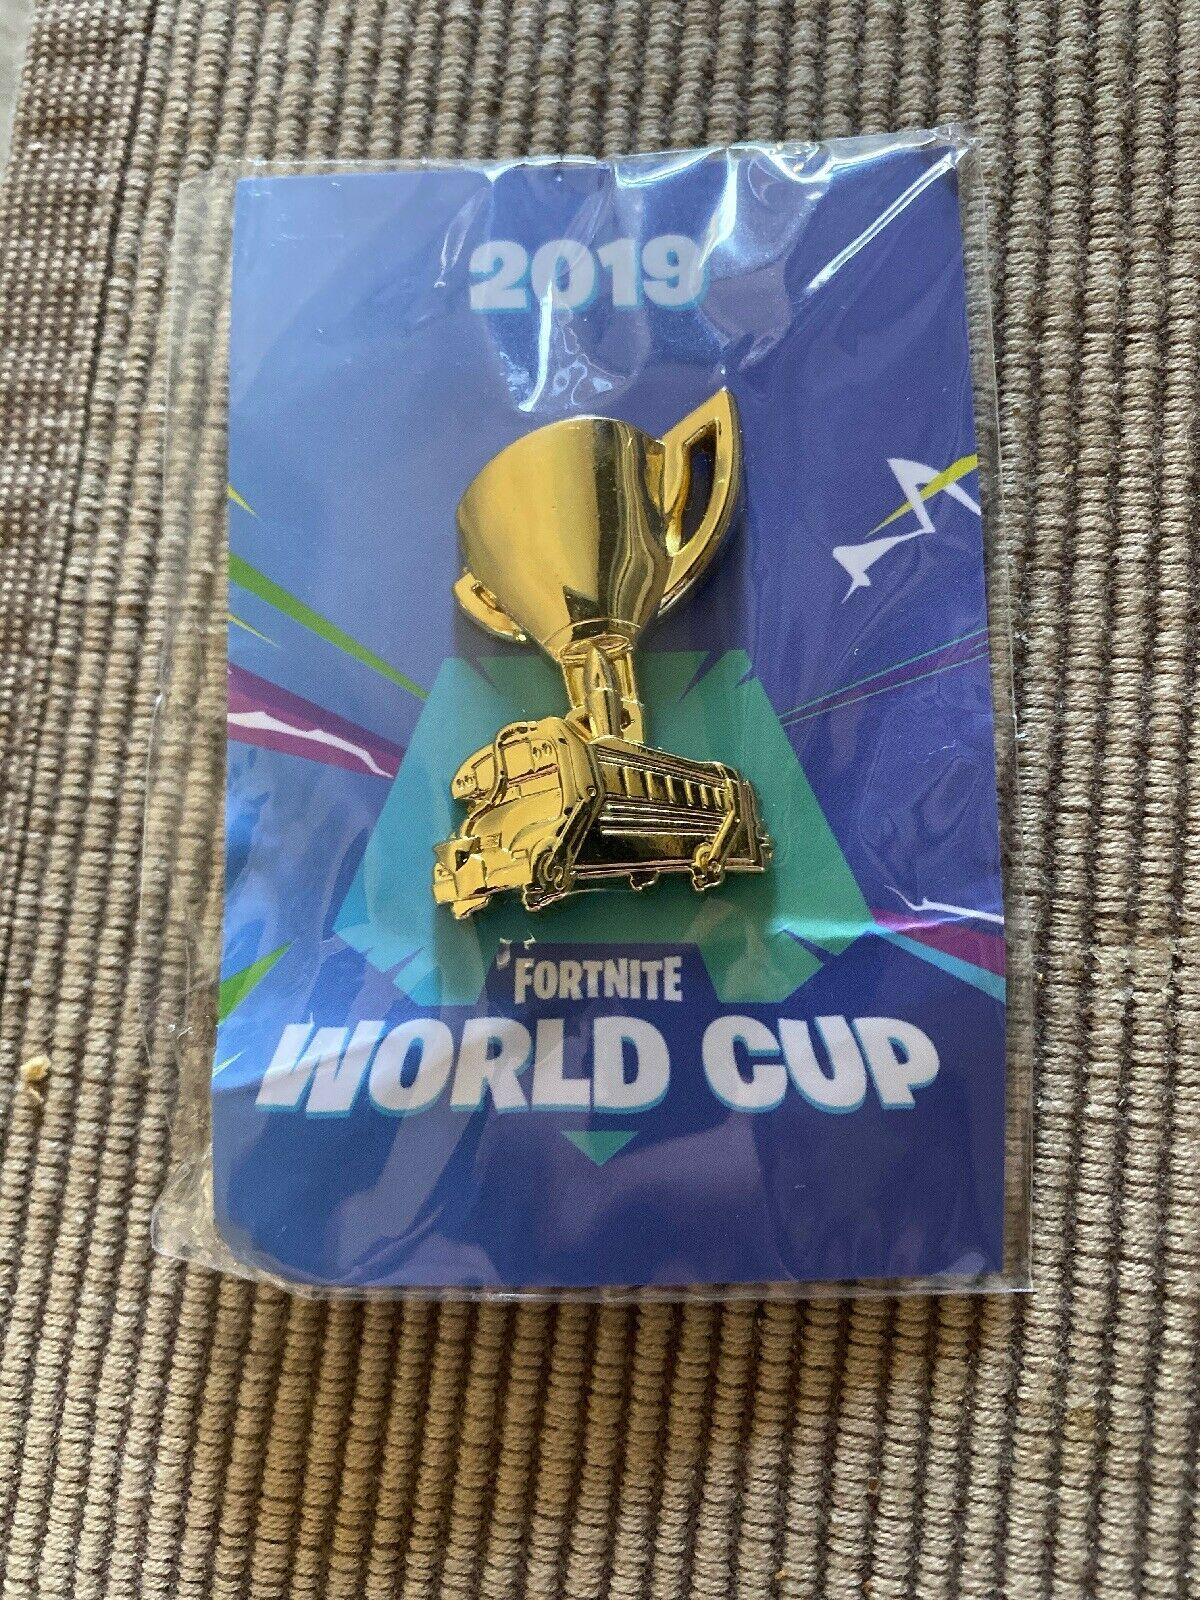 Extremely Uncommon Fortnite Gold Battle Bus Trophy Pin Fortnite World Cup Nyc 2019 World Cup Trophy Fortnite